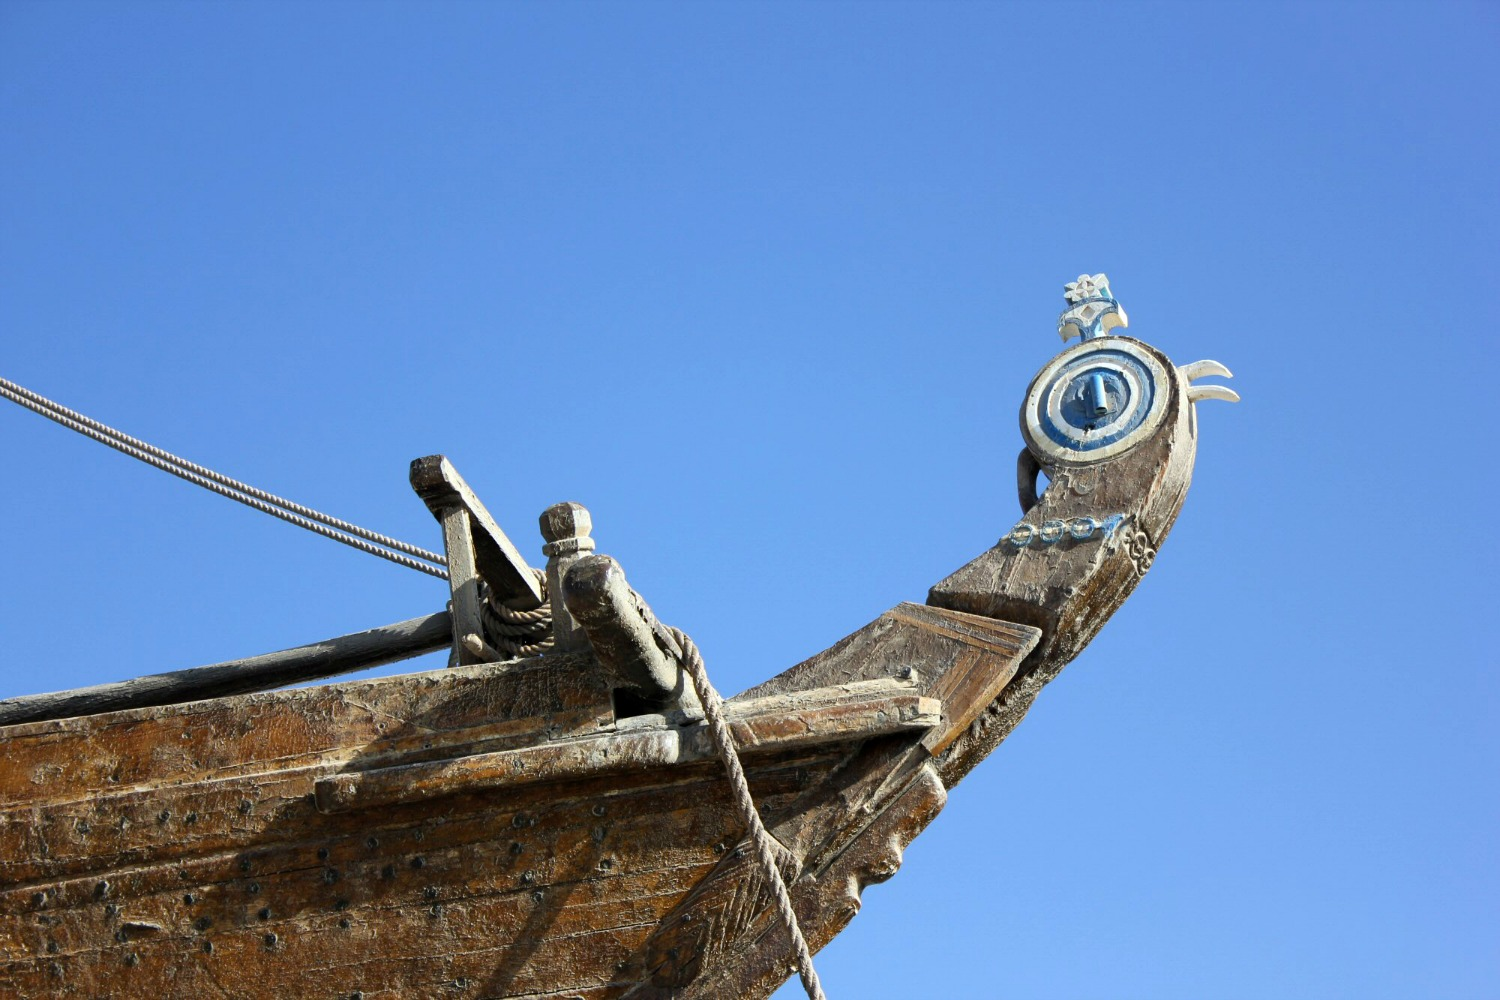 The painted prow of a historic wooden dhow boat against a blue sky at Sur in Oman - my nine reasons to visit Oman with kids